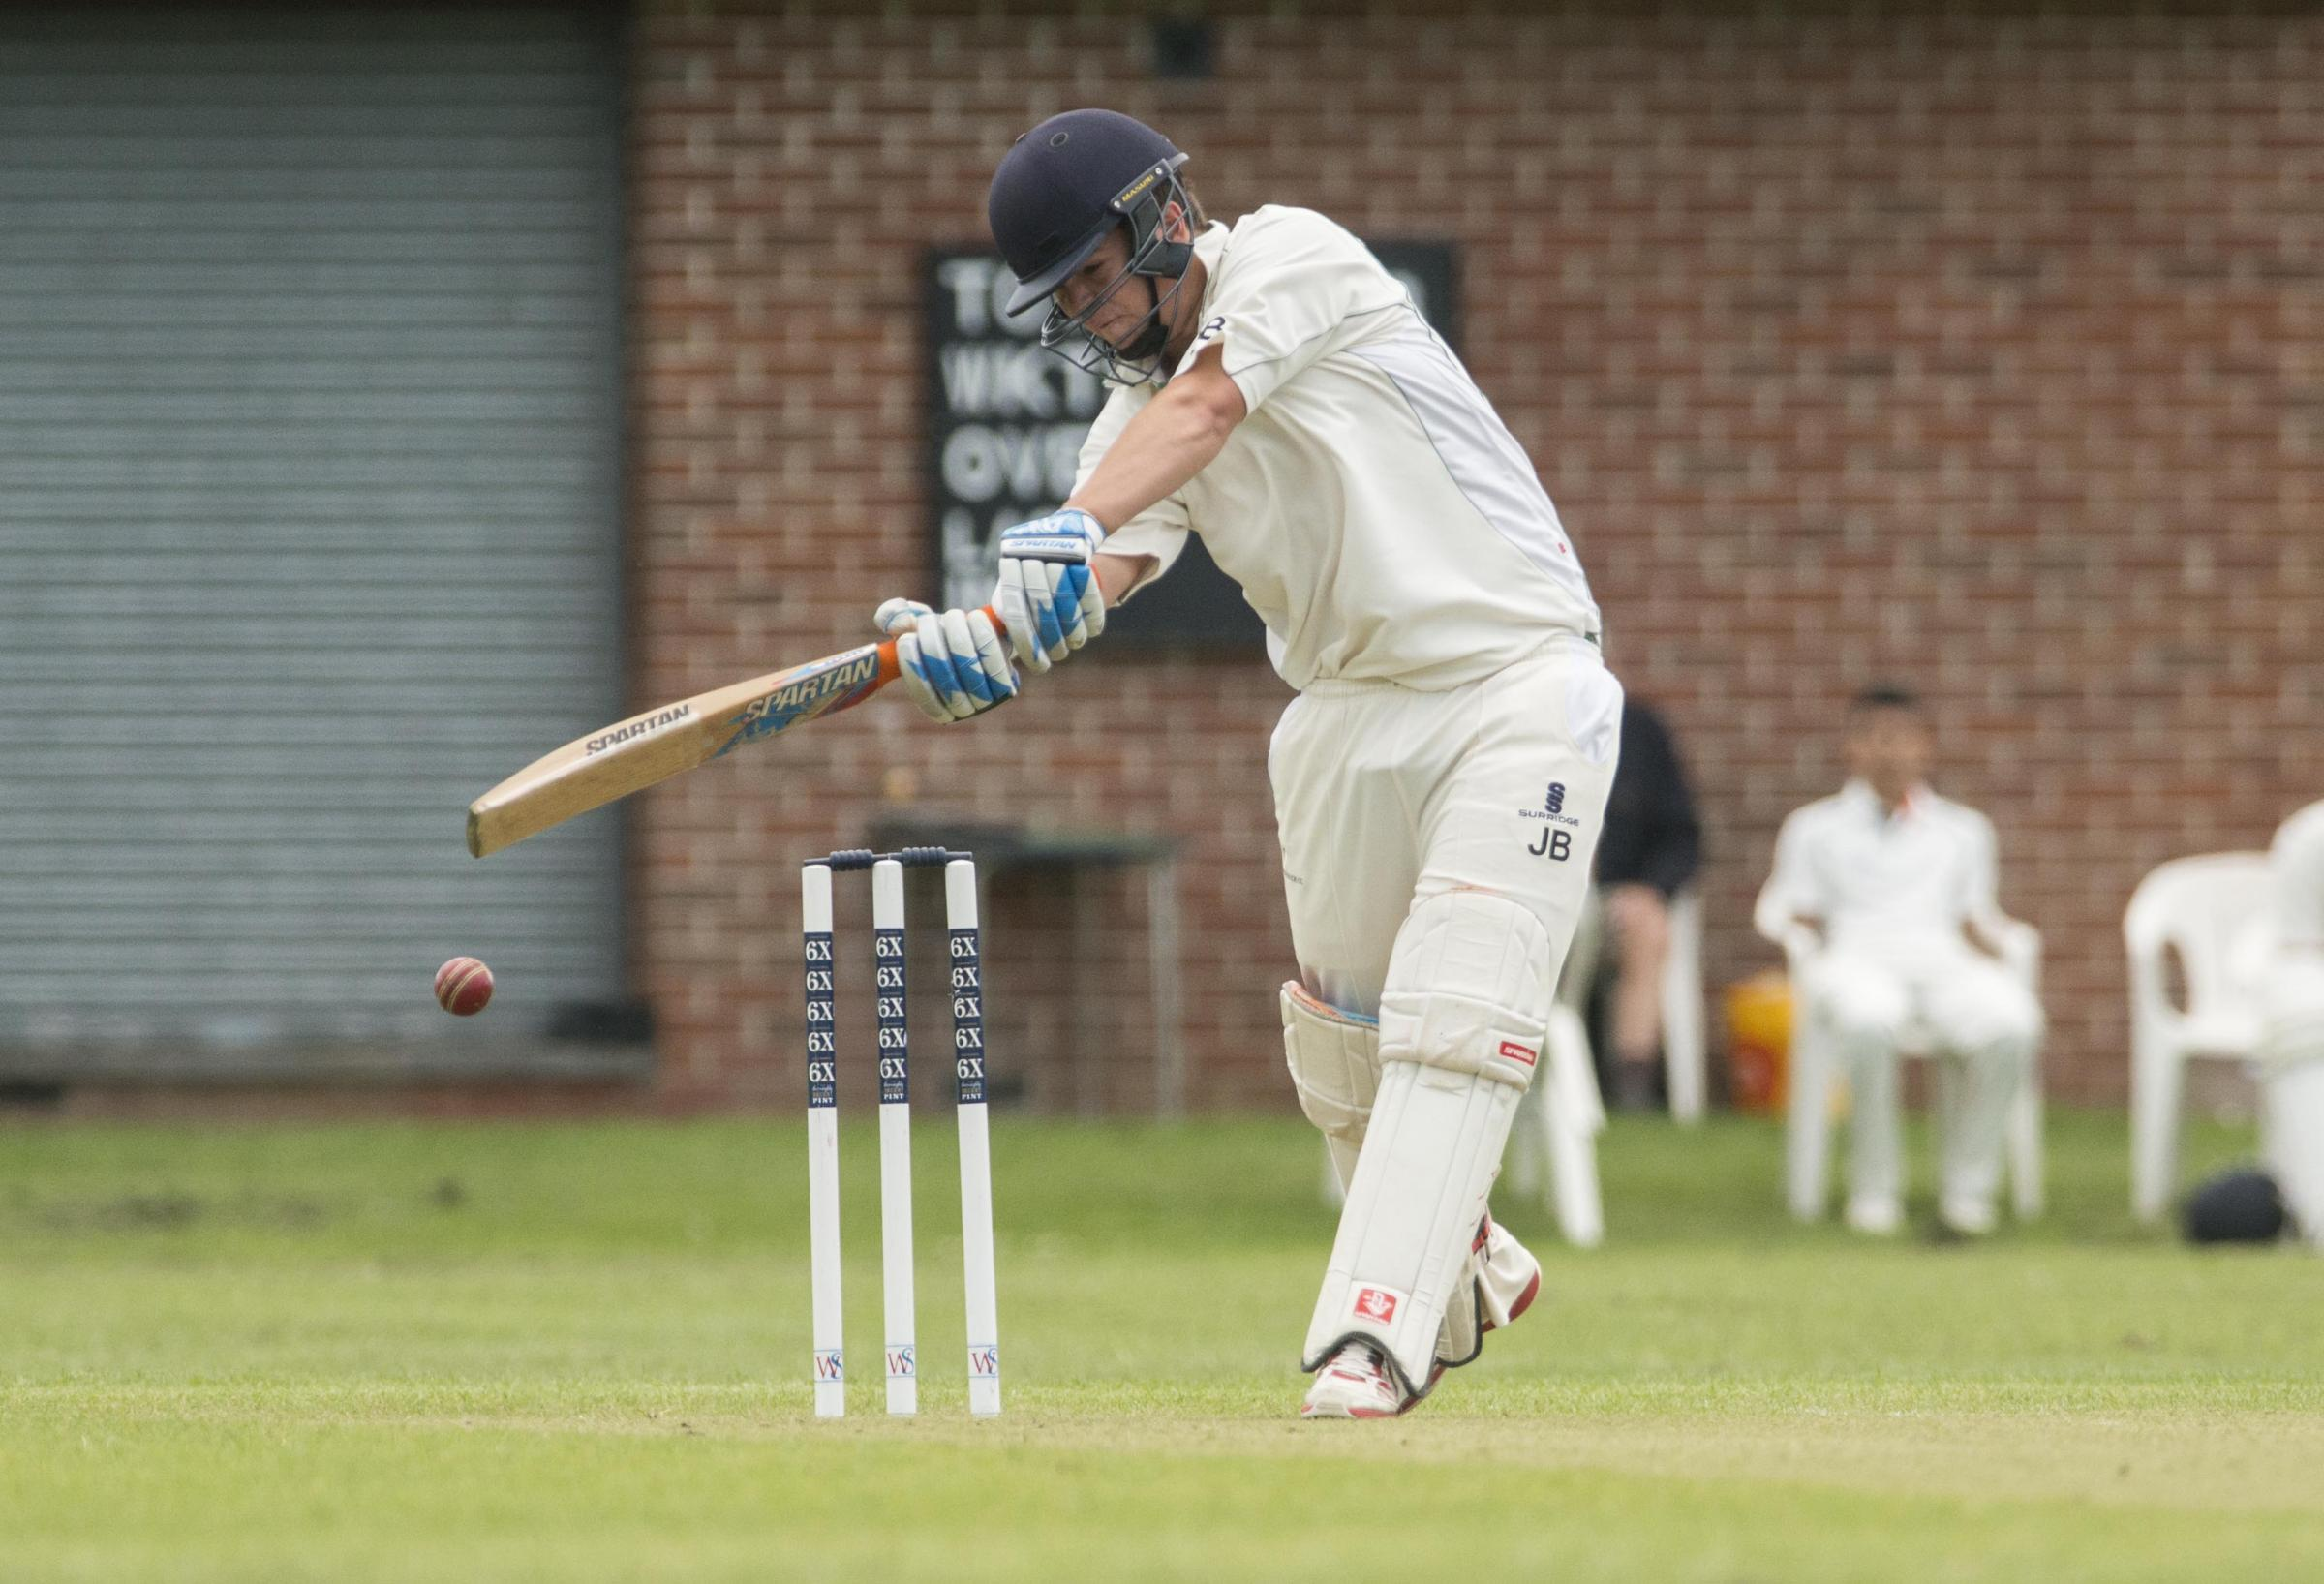 Wanborough's John Baldwin plays a shot this weekend Pic Vicky Scipio